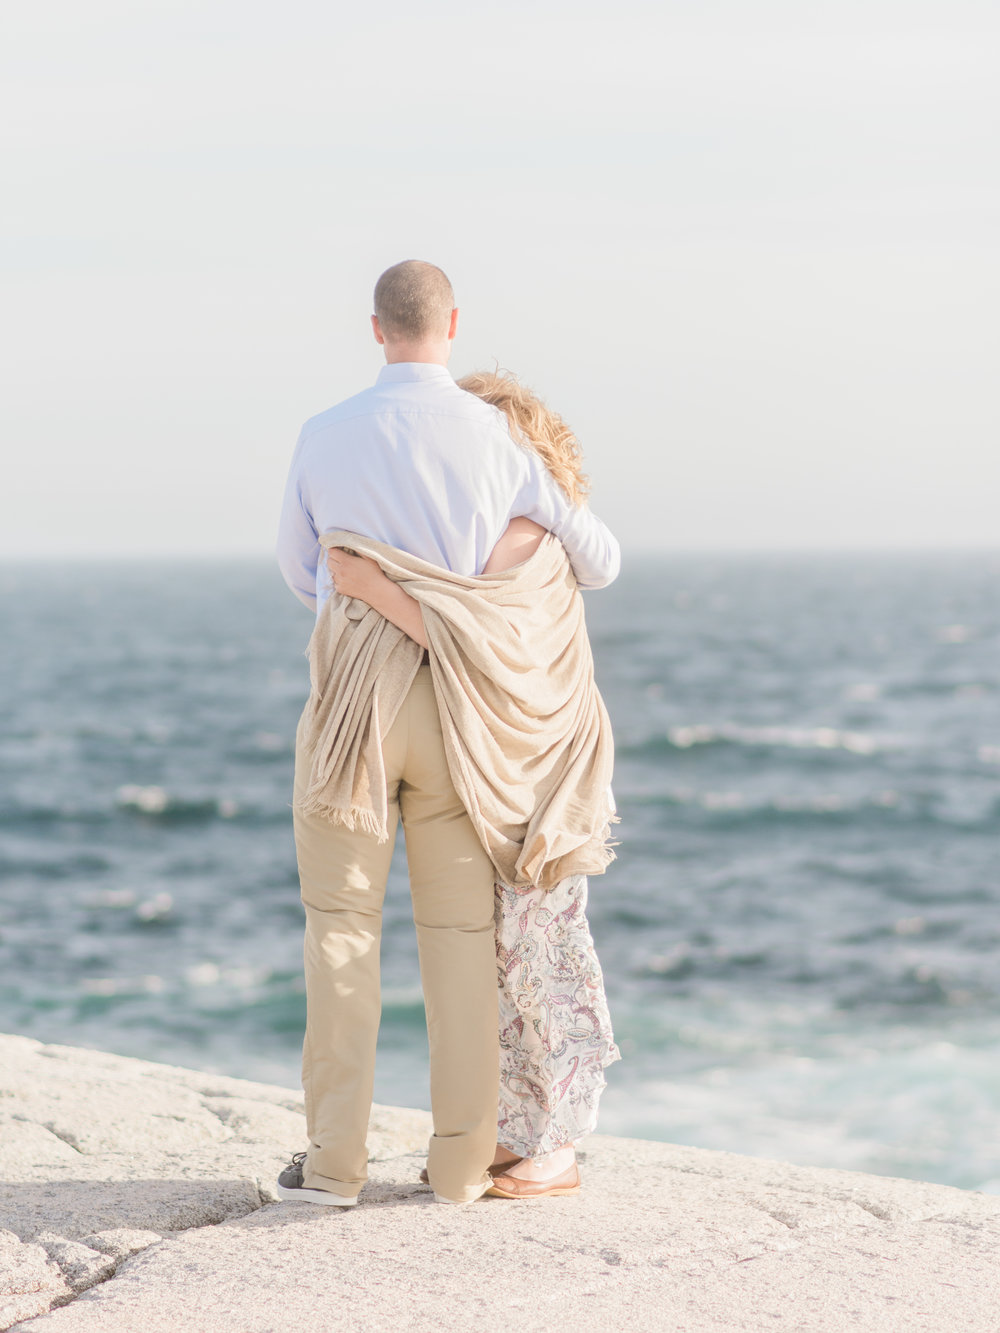 Jacqueline Anne Photography - Alex and Andrew Engagement at Peggy's Cove - Halifax-6.jpg